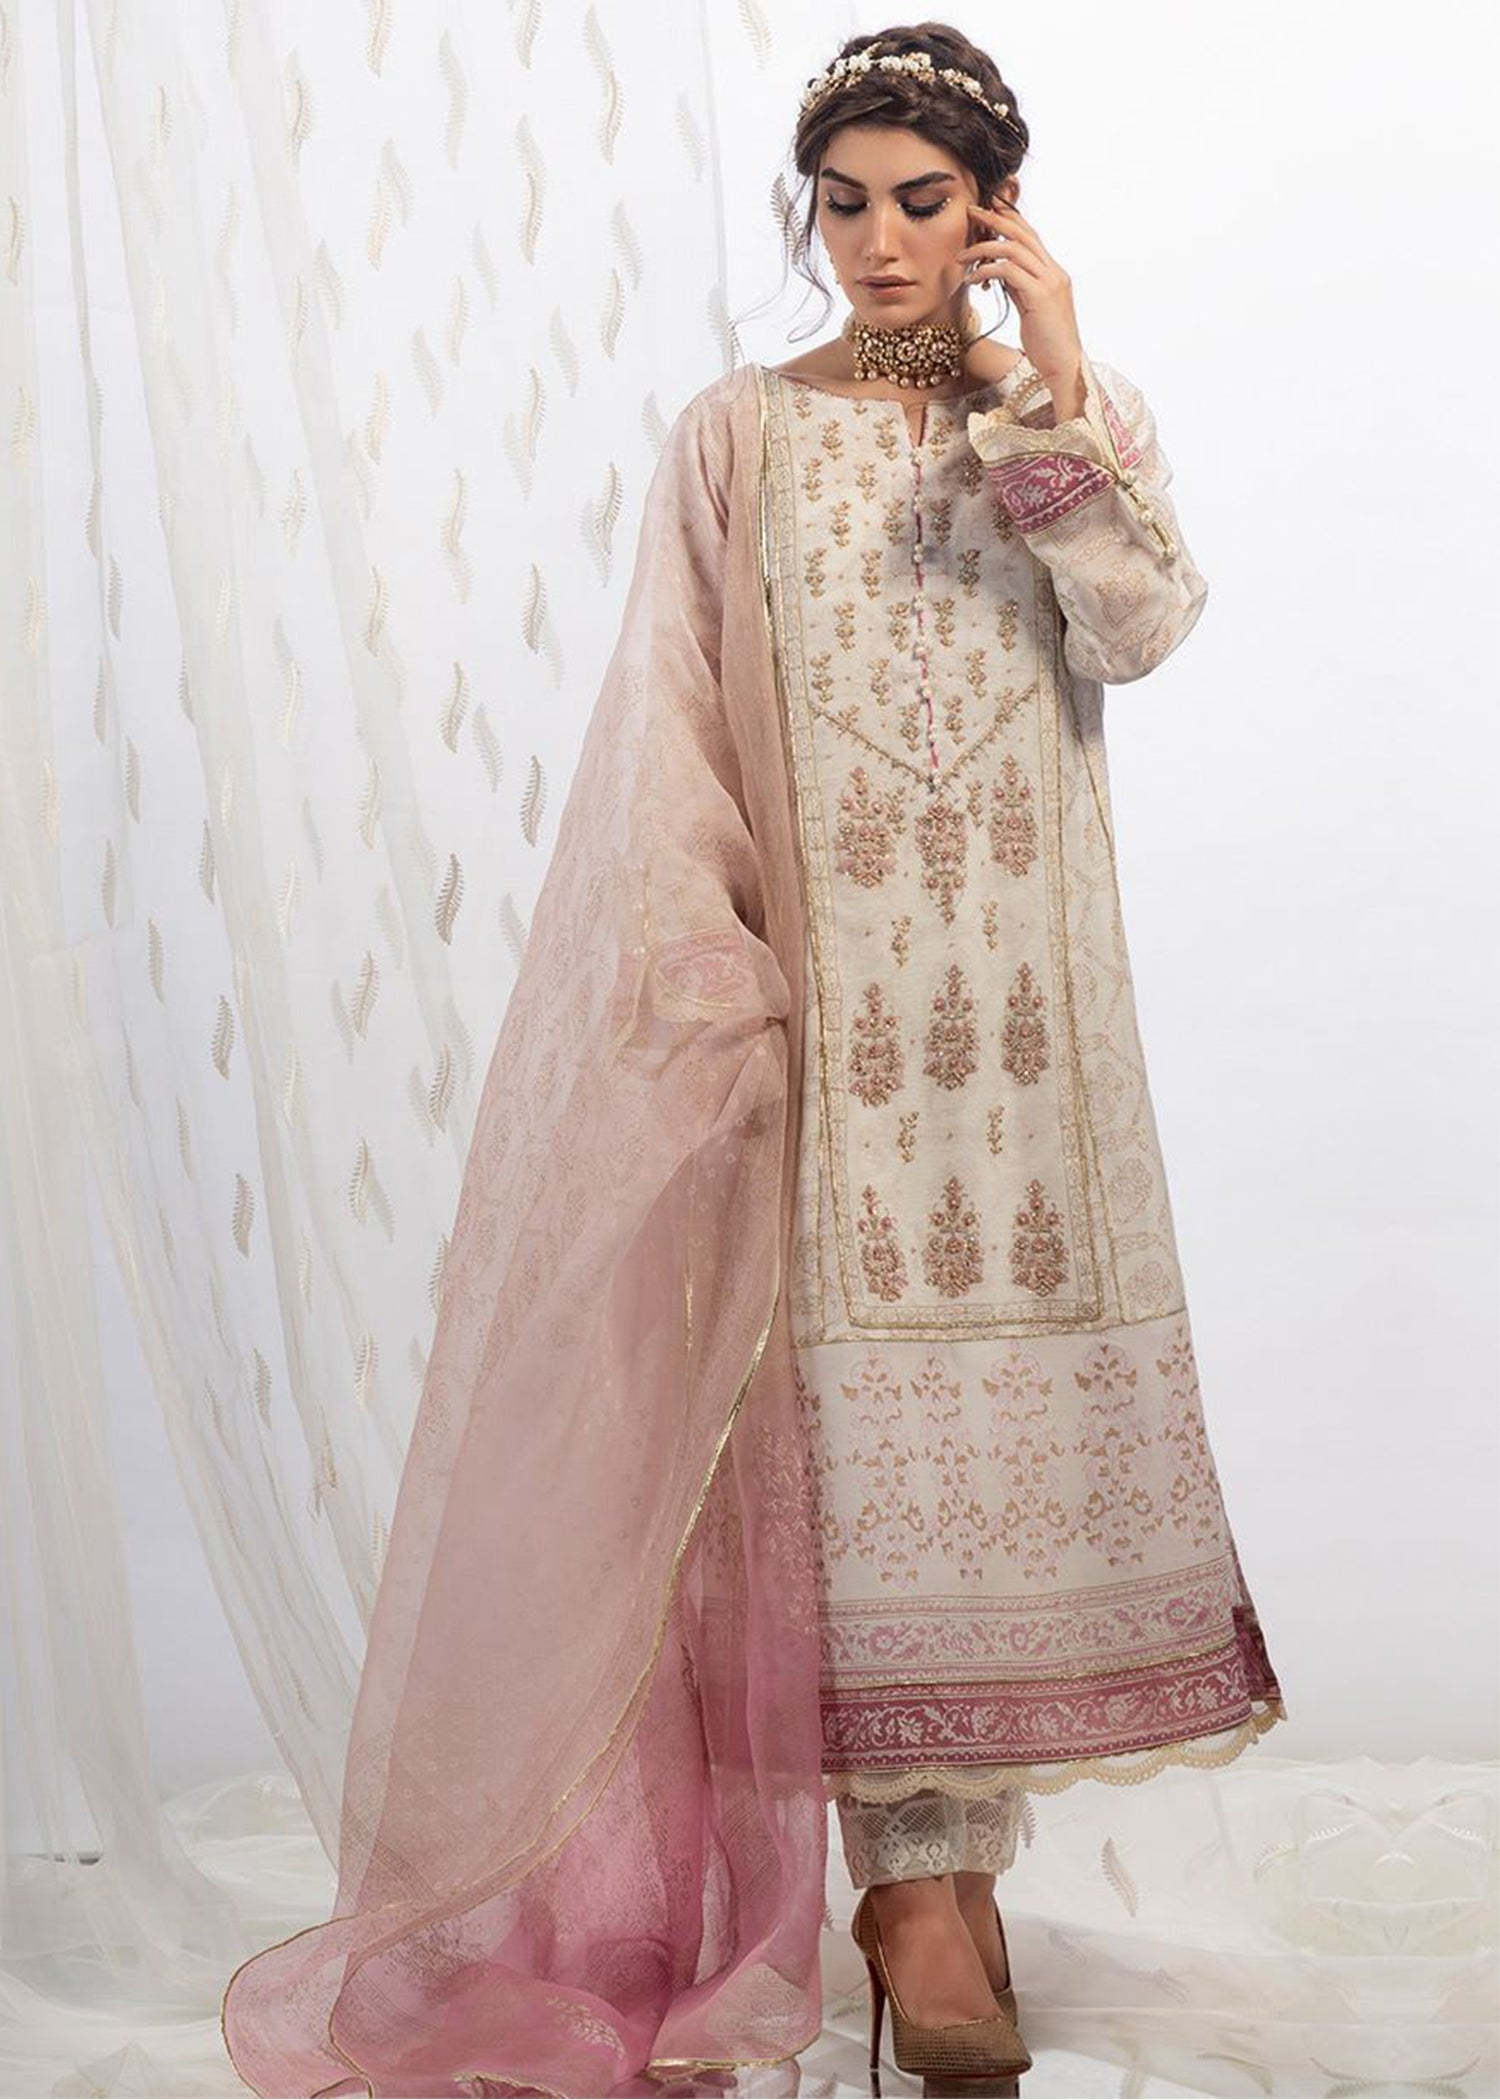 Ivory rose cotton net shirt with dupatta